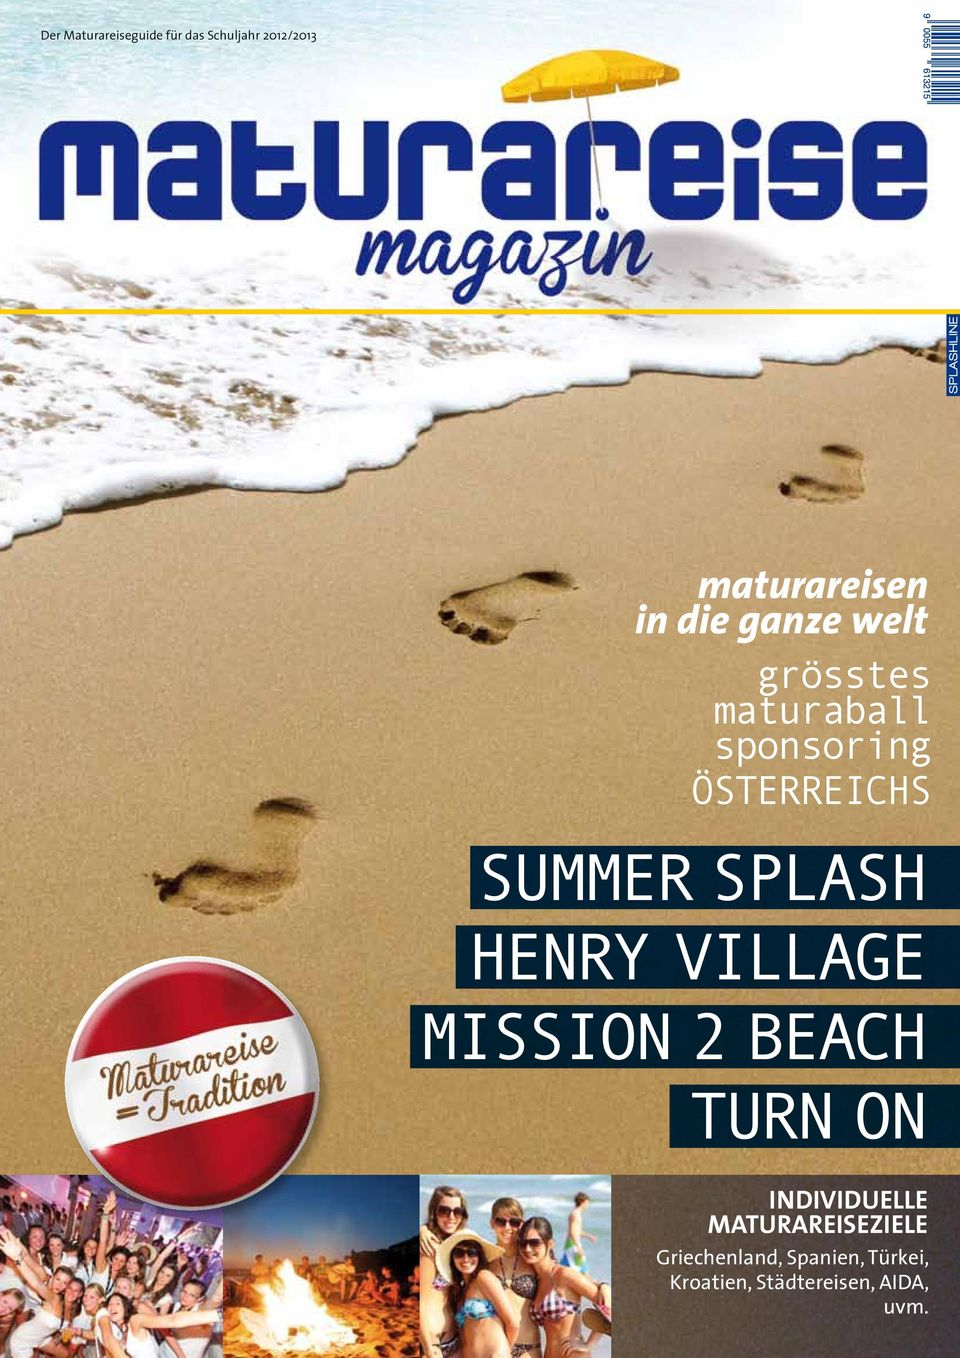 SPLASH HENRY VILLAGE MISSION 2 BEACH TURN ON INDIVIDUELLE